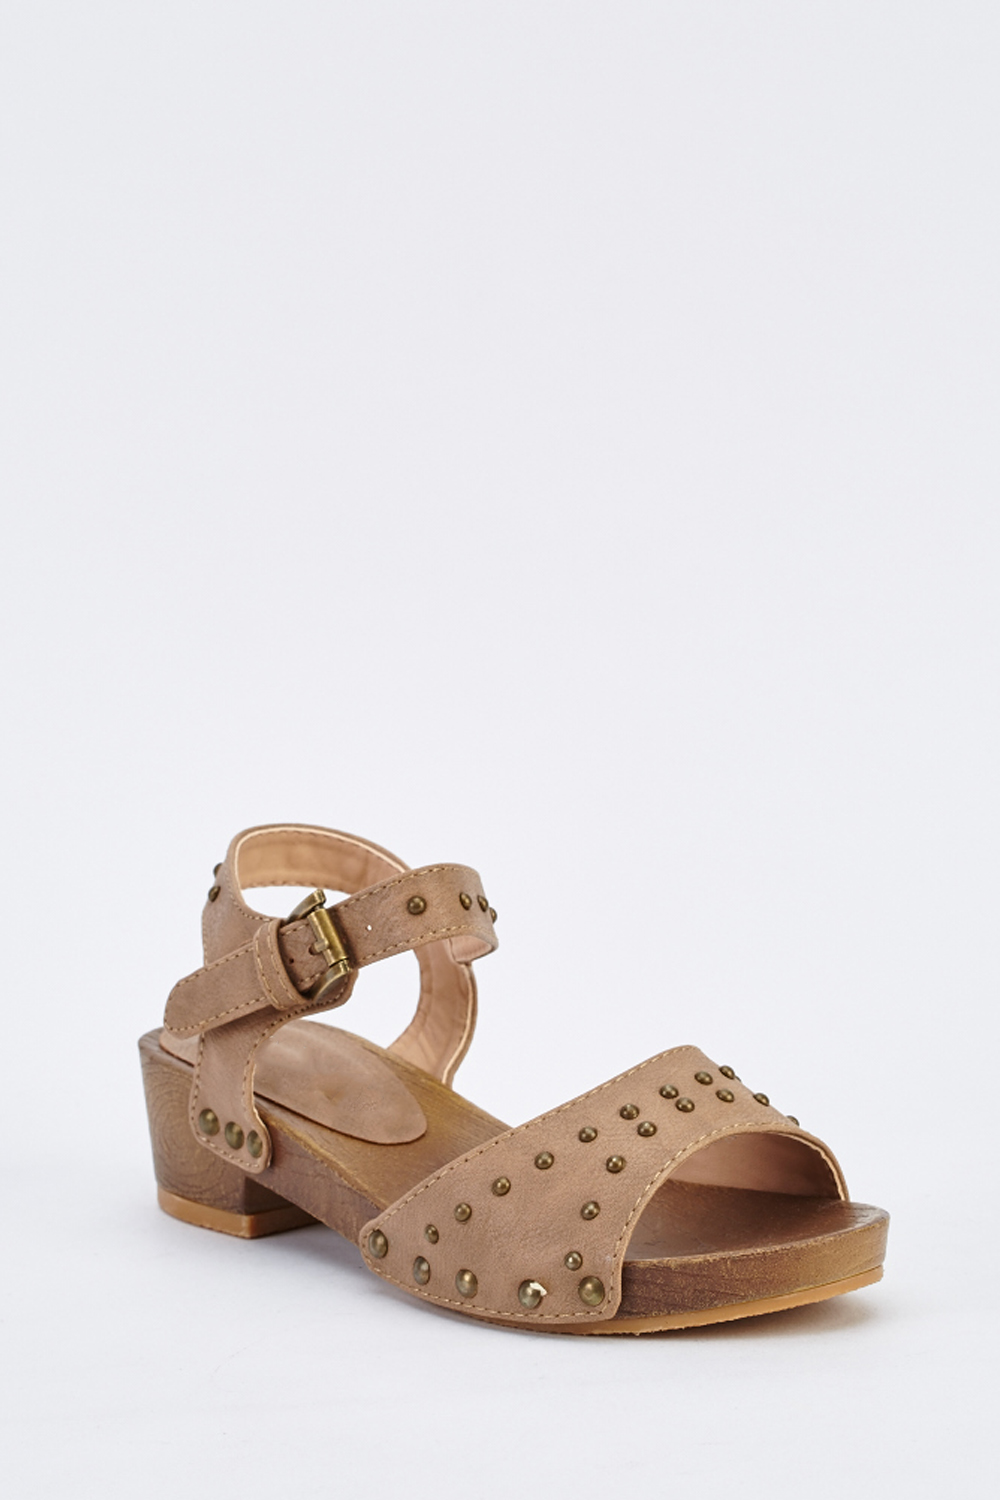 ef4776582f8 Studded Low Wedge Sandals - Just £5